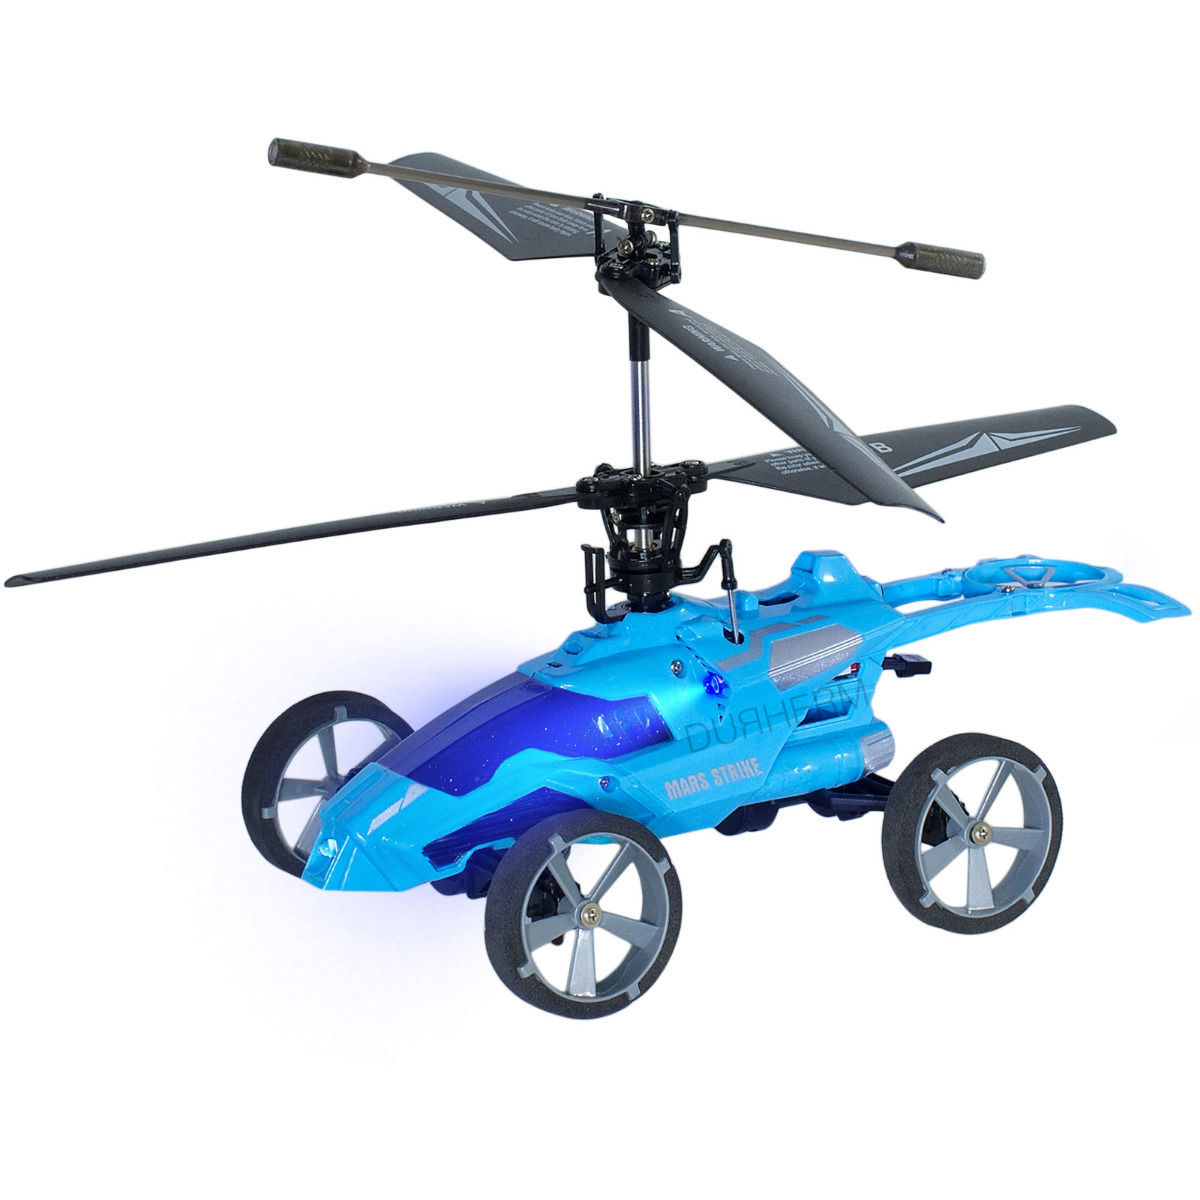 Helicopter Transforms into a Car with IR Flying Driving Shooting Fighting Battle Gyro Remote Controlled 3.5CH Toy